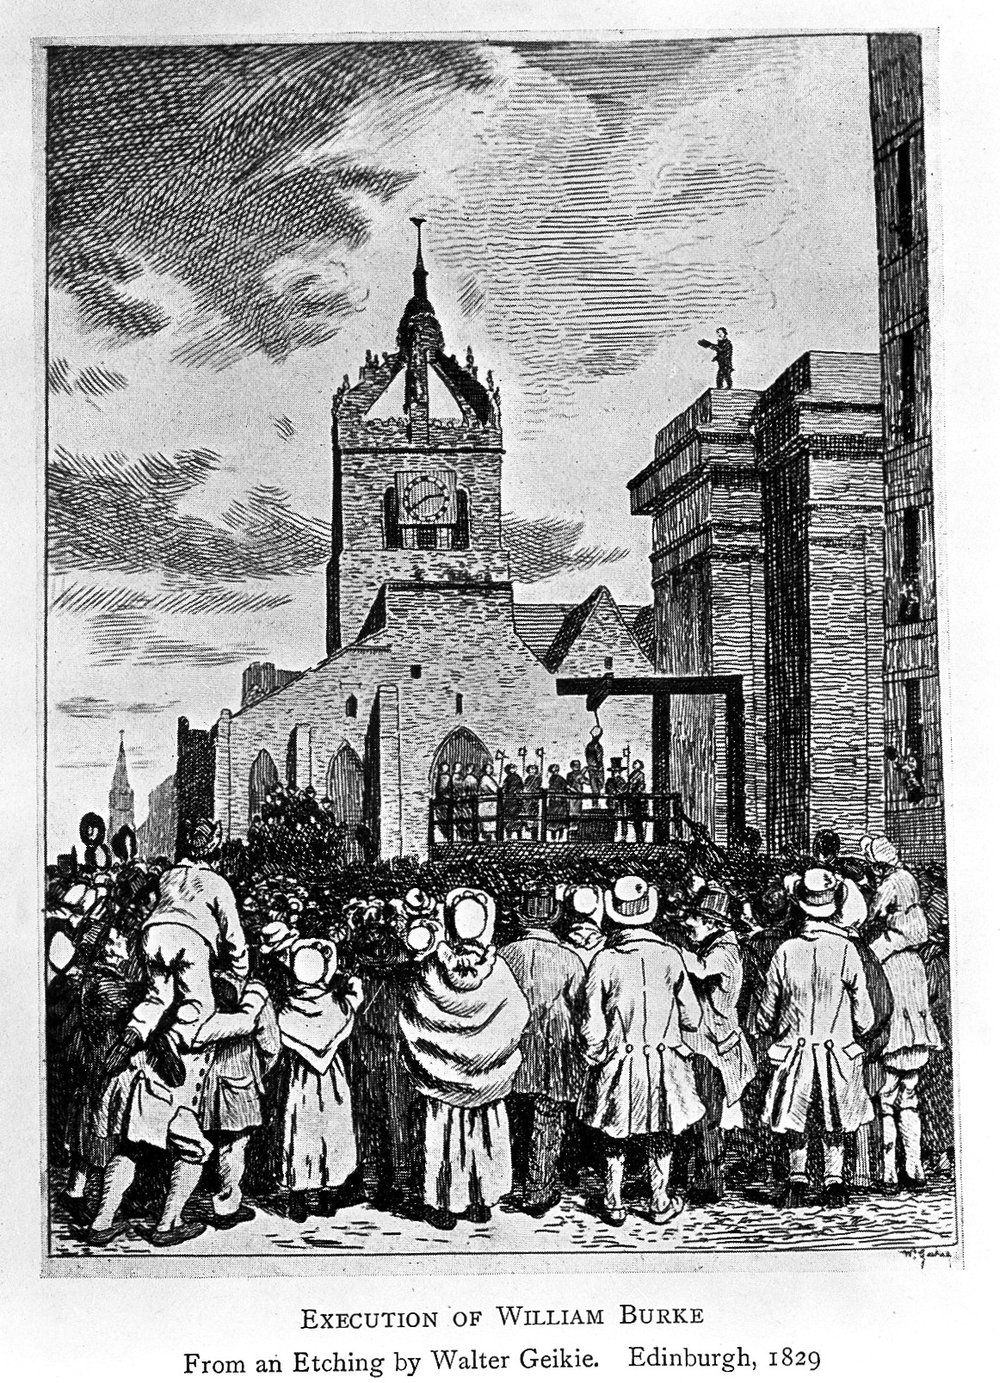 Execution of William Burke, Edinburgh - Wellcome Trust